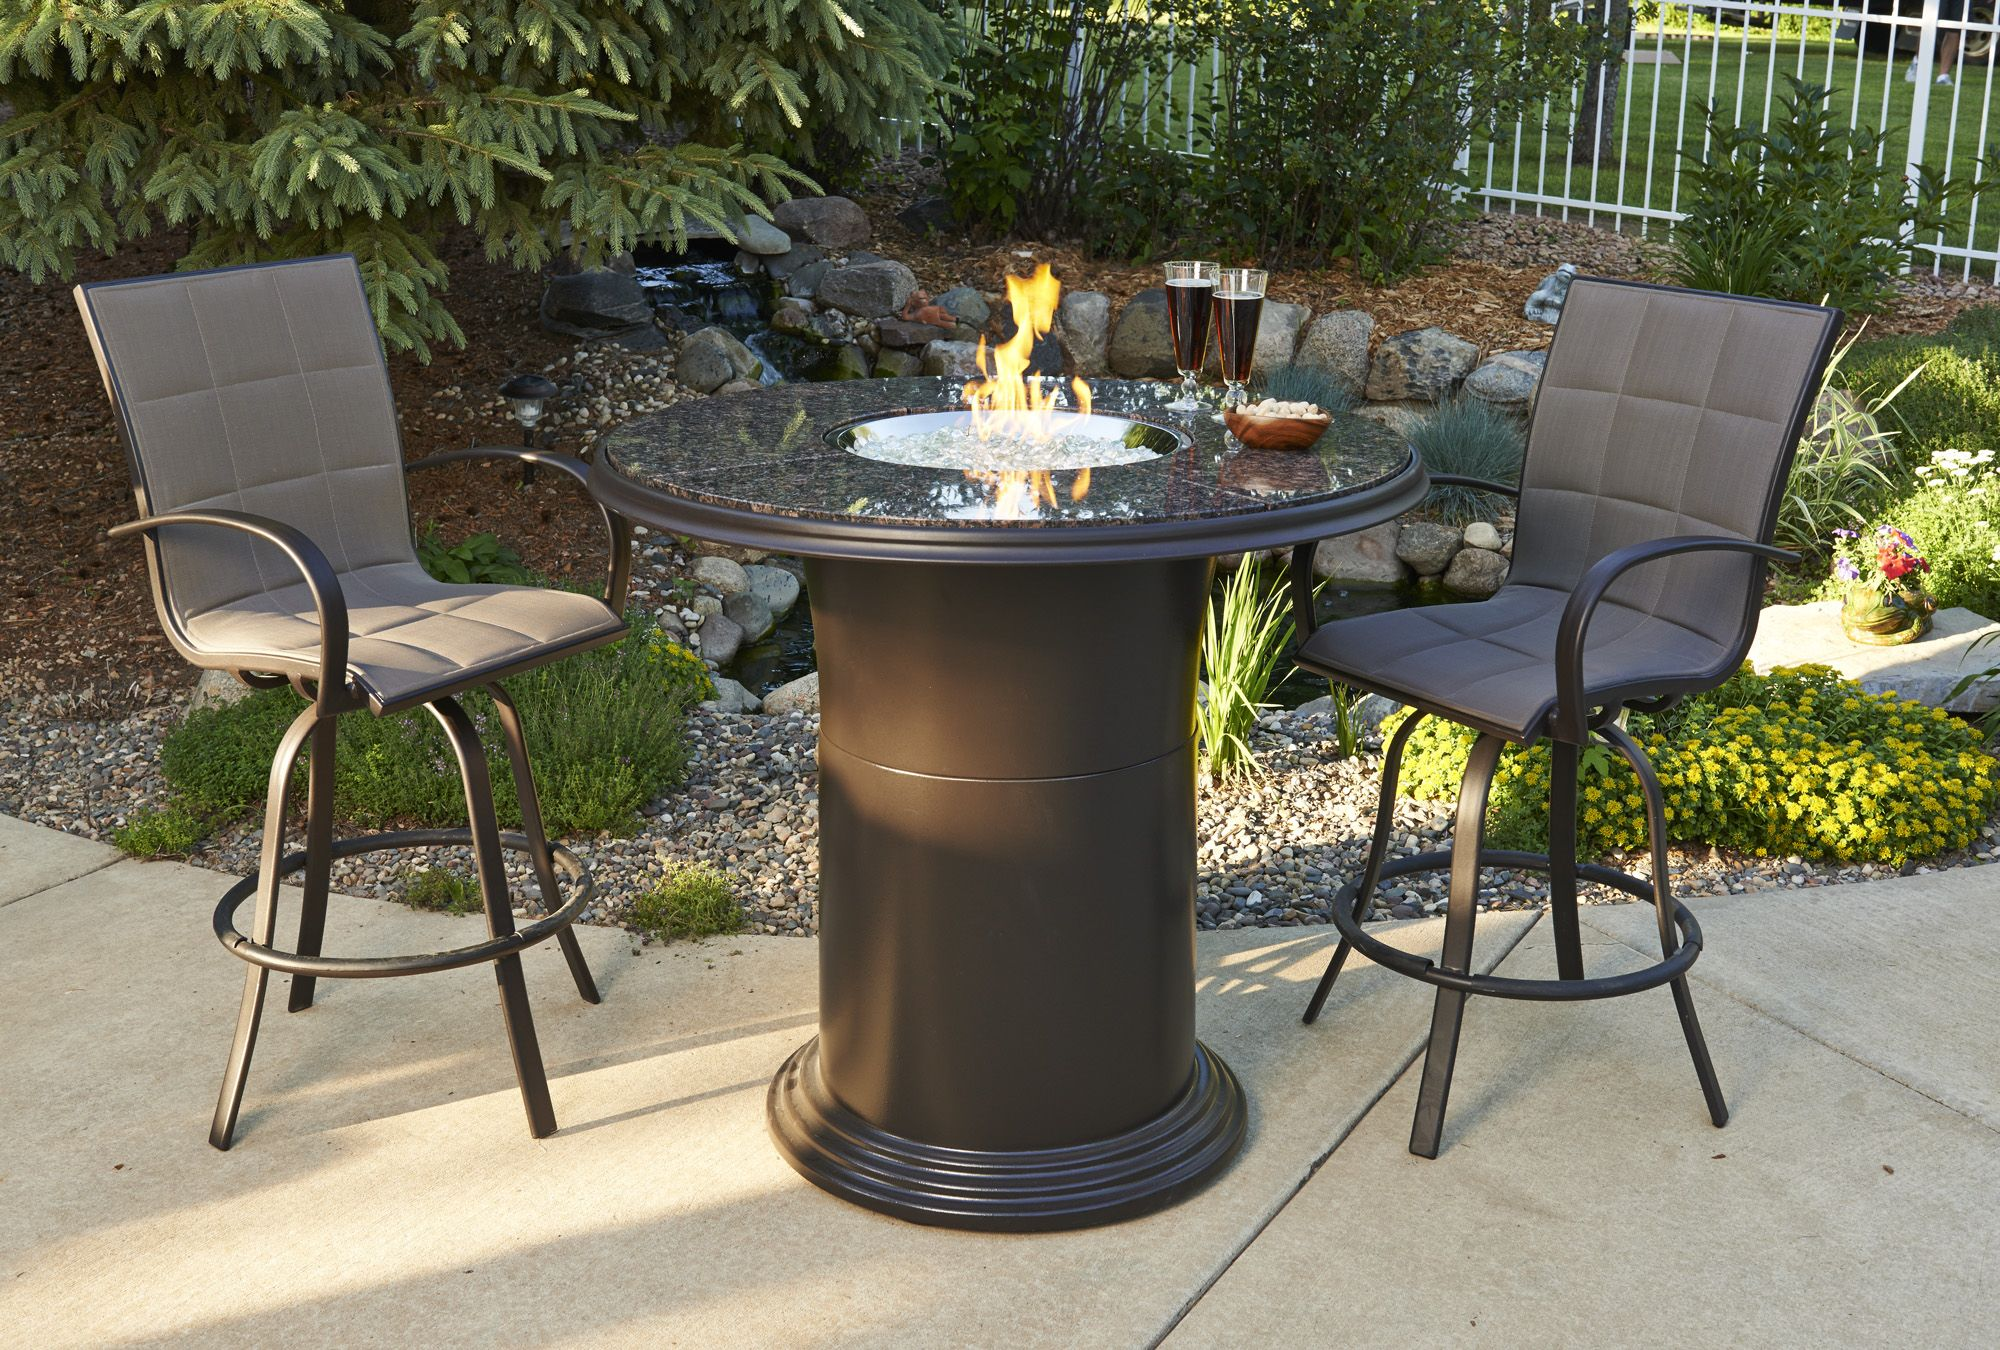 Pub Height Fire Pit Table So Cool Outdoor Furniture And Patio - Pub height fire pit table